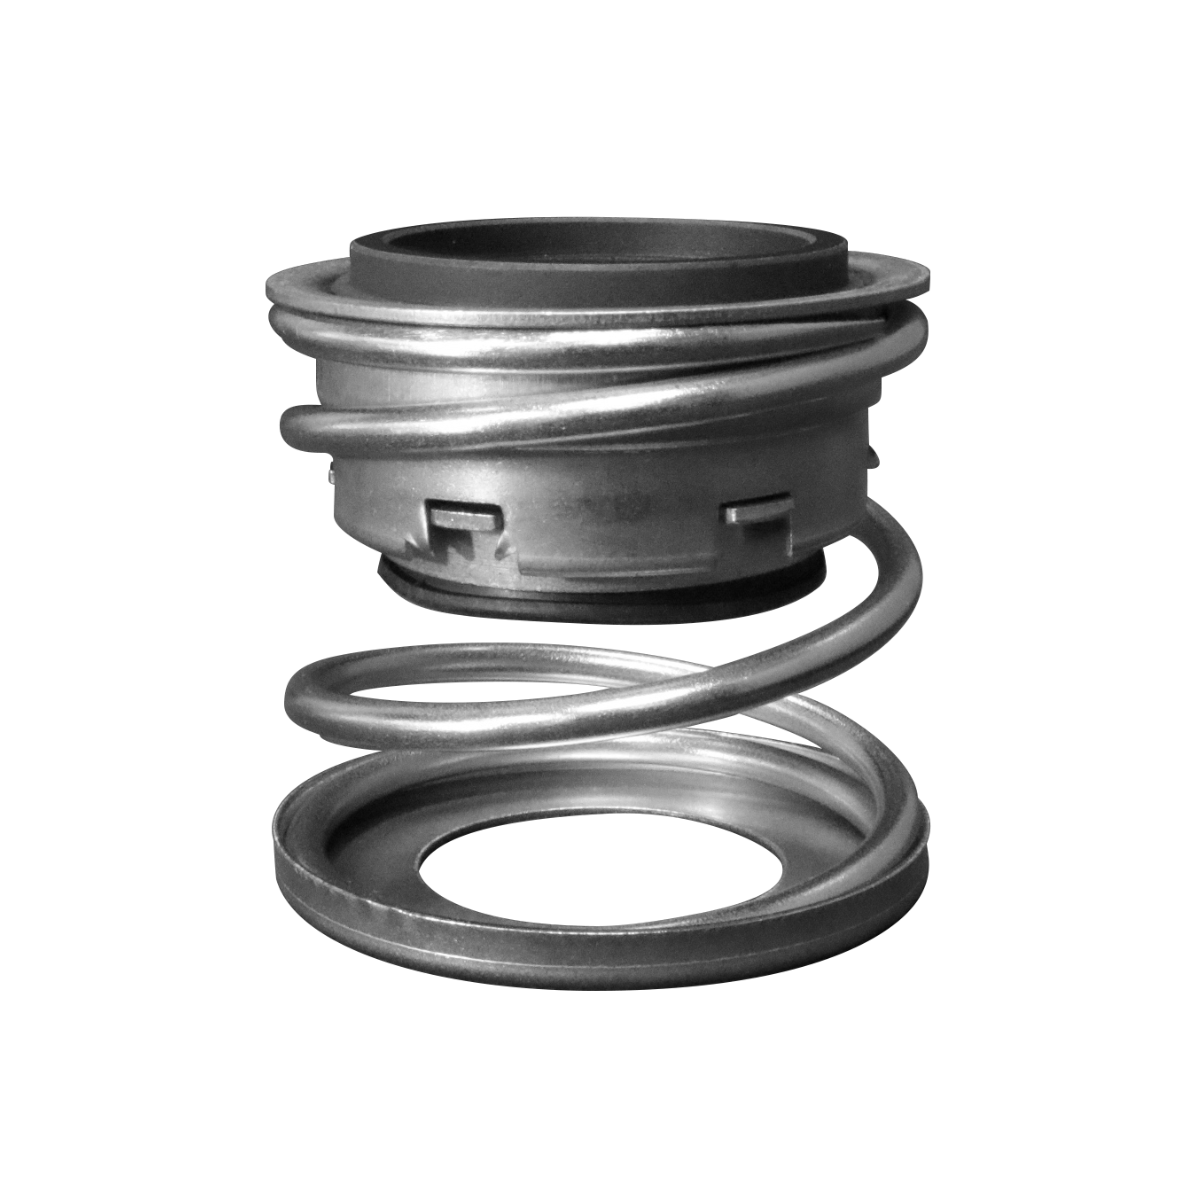 Thomson Type 2 Component Seal